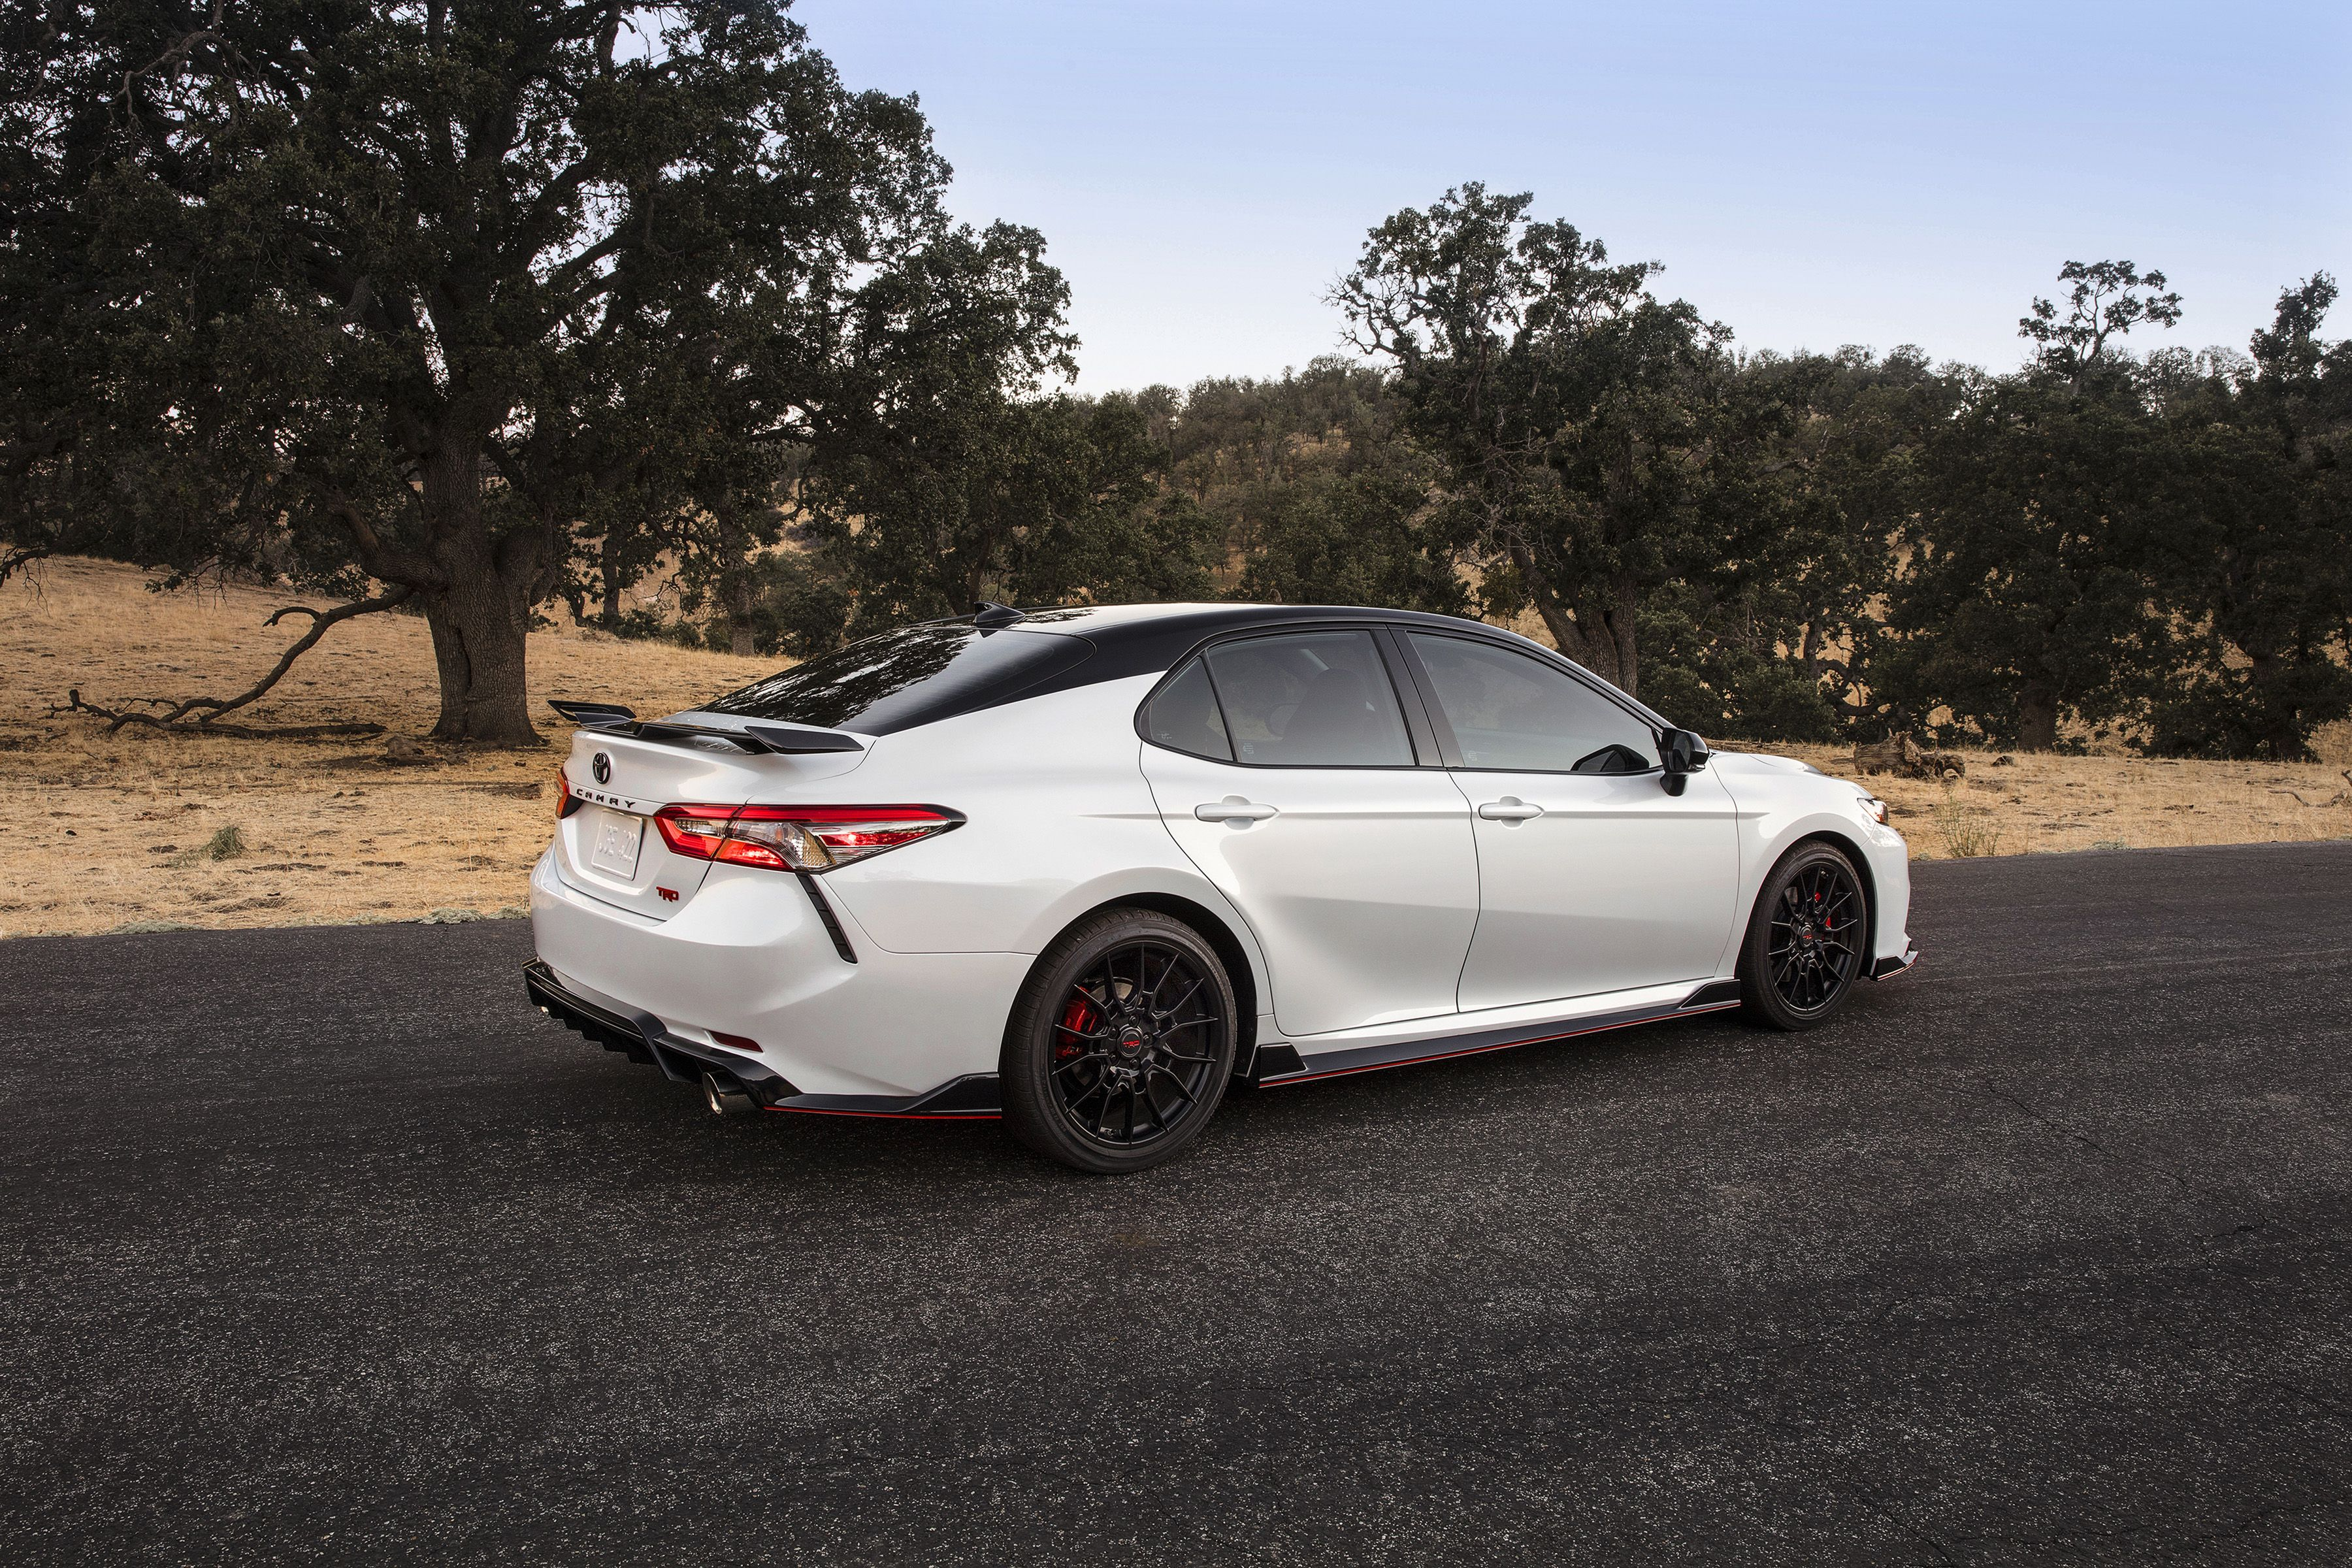 2020 toyota camry trd is the sportiest version of the mid size sedan 1993 Toyota Camry Parts